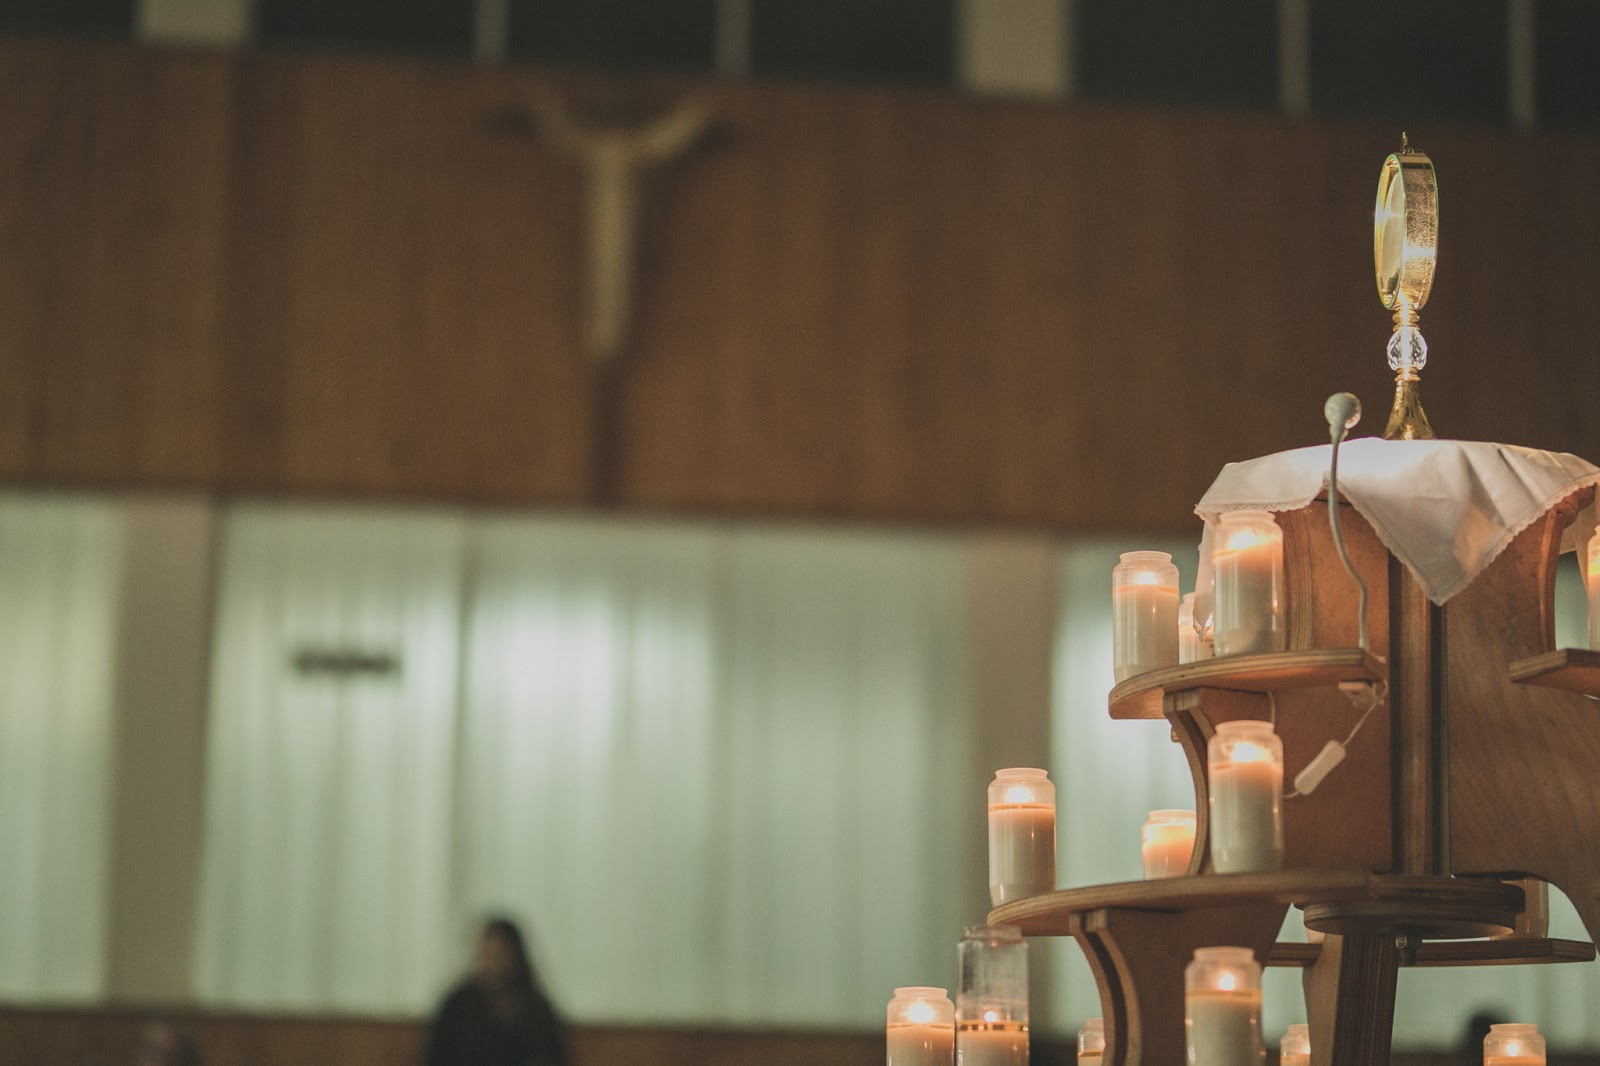 Dwelling in the Eucharist: The Architecture of Salvation